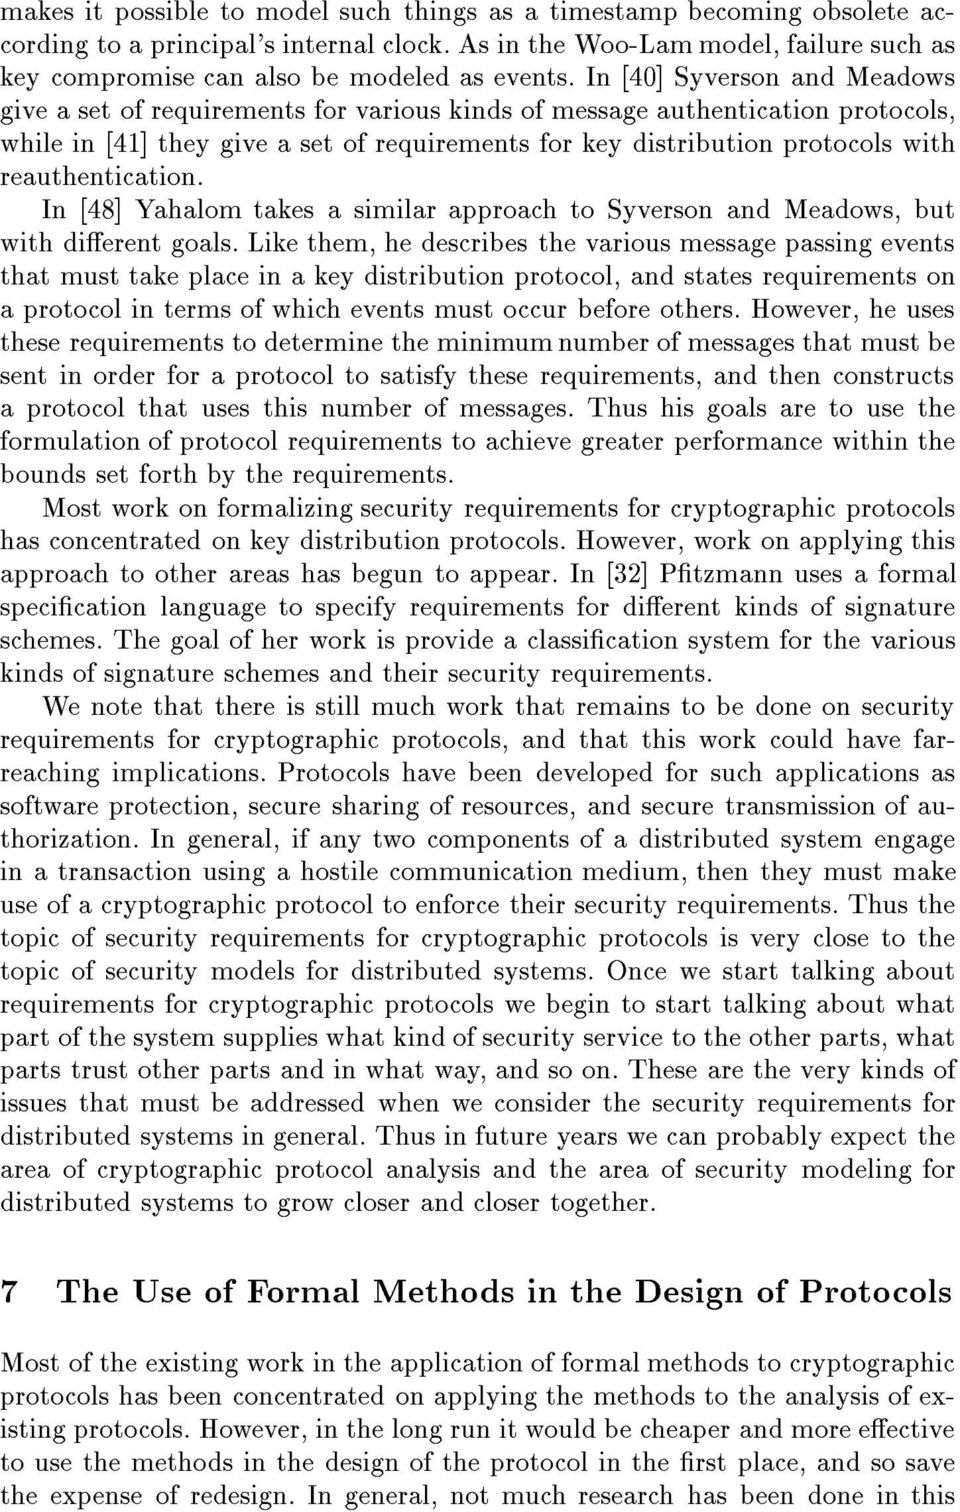 In [40] Syverson and Meadows give a set of requirements for various kinds of message authentication protocols, while in [41] they give a set of requirements for key distribution protocols with